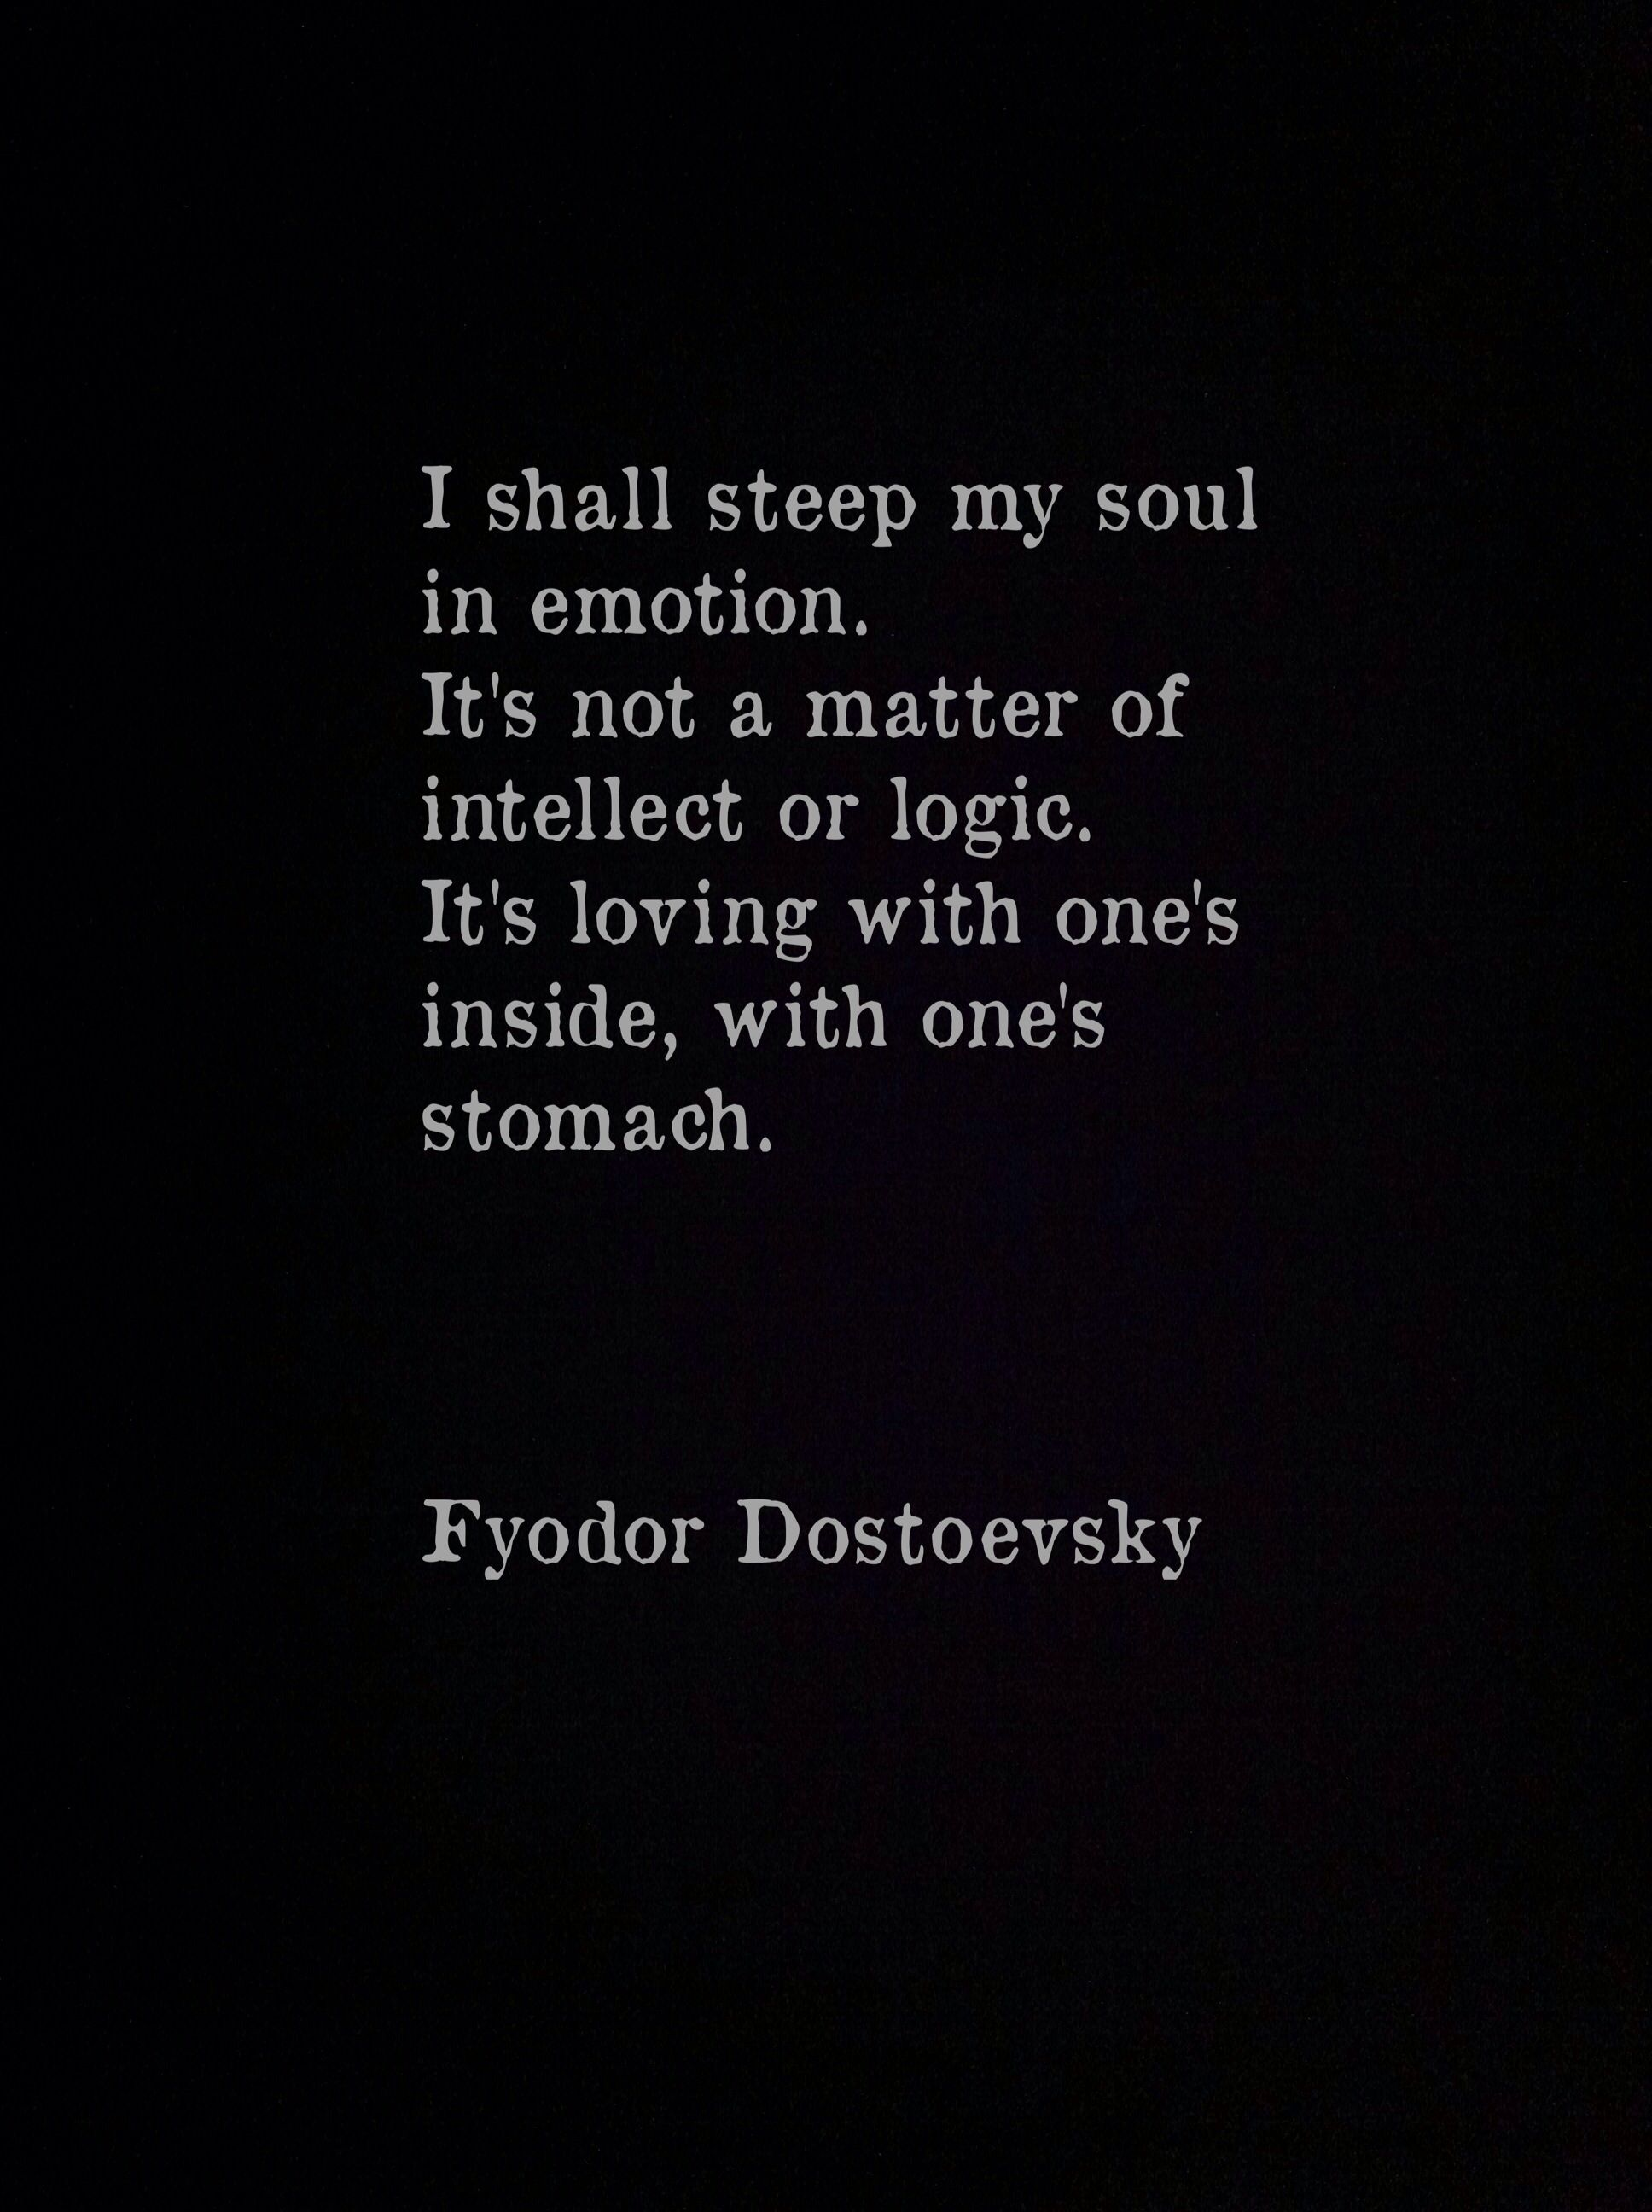 23brilliantly insightful quotes from Dostoyevsky which will free your mind